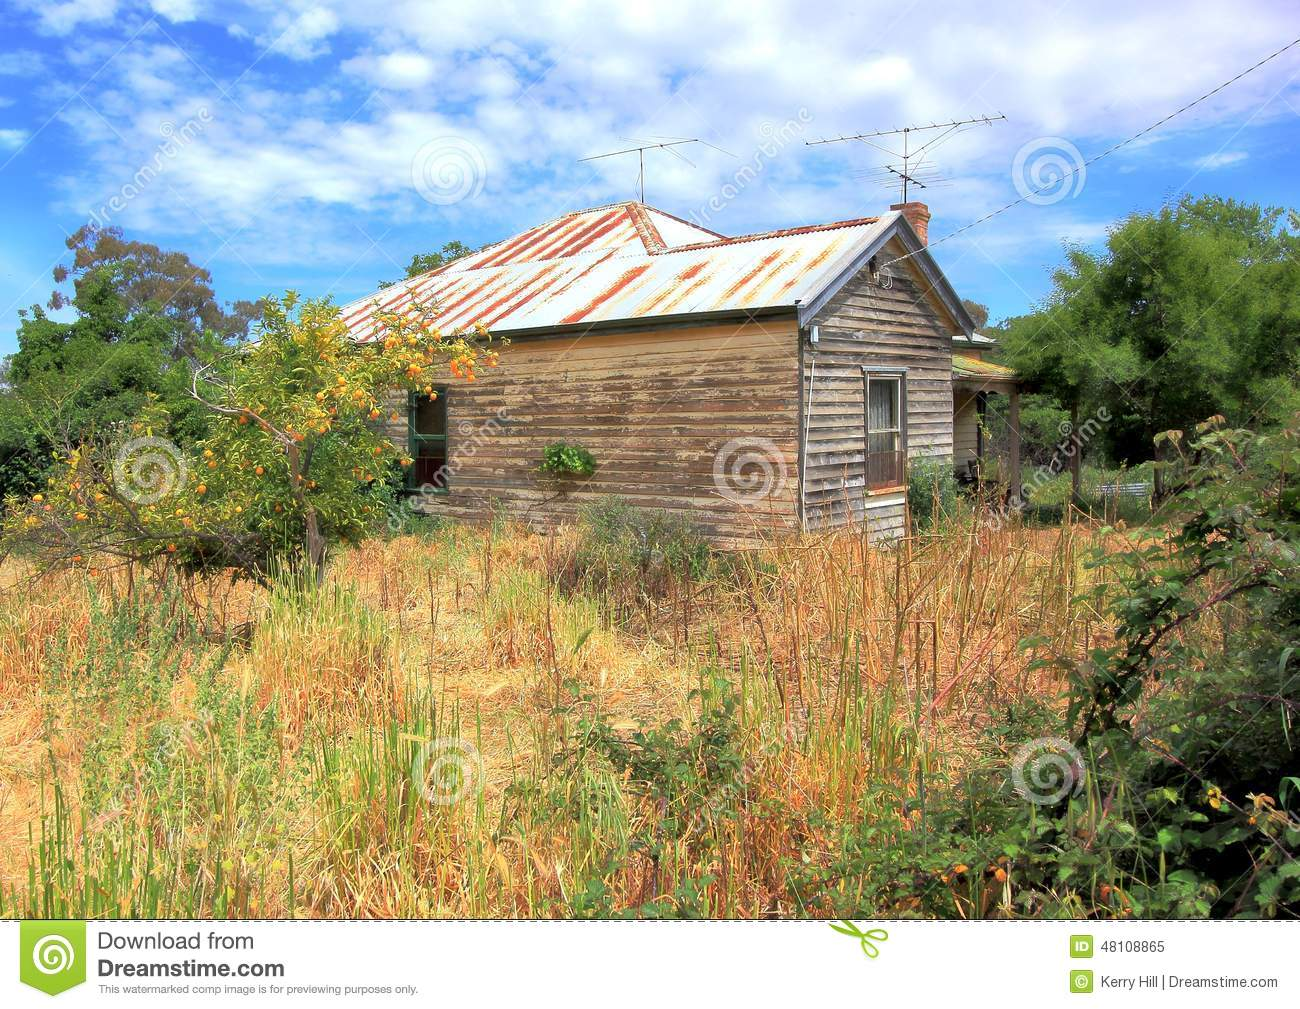 Old Run Down Country Wooden House In An Over Grown Bush Rural.